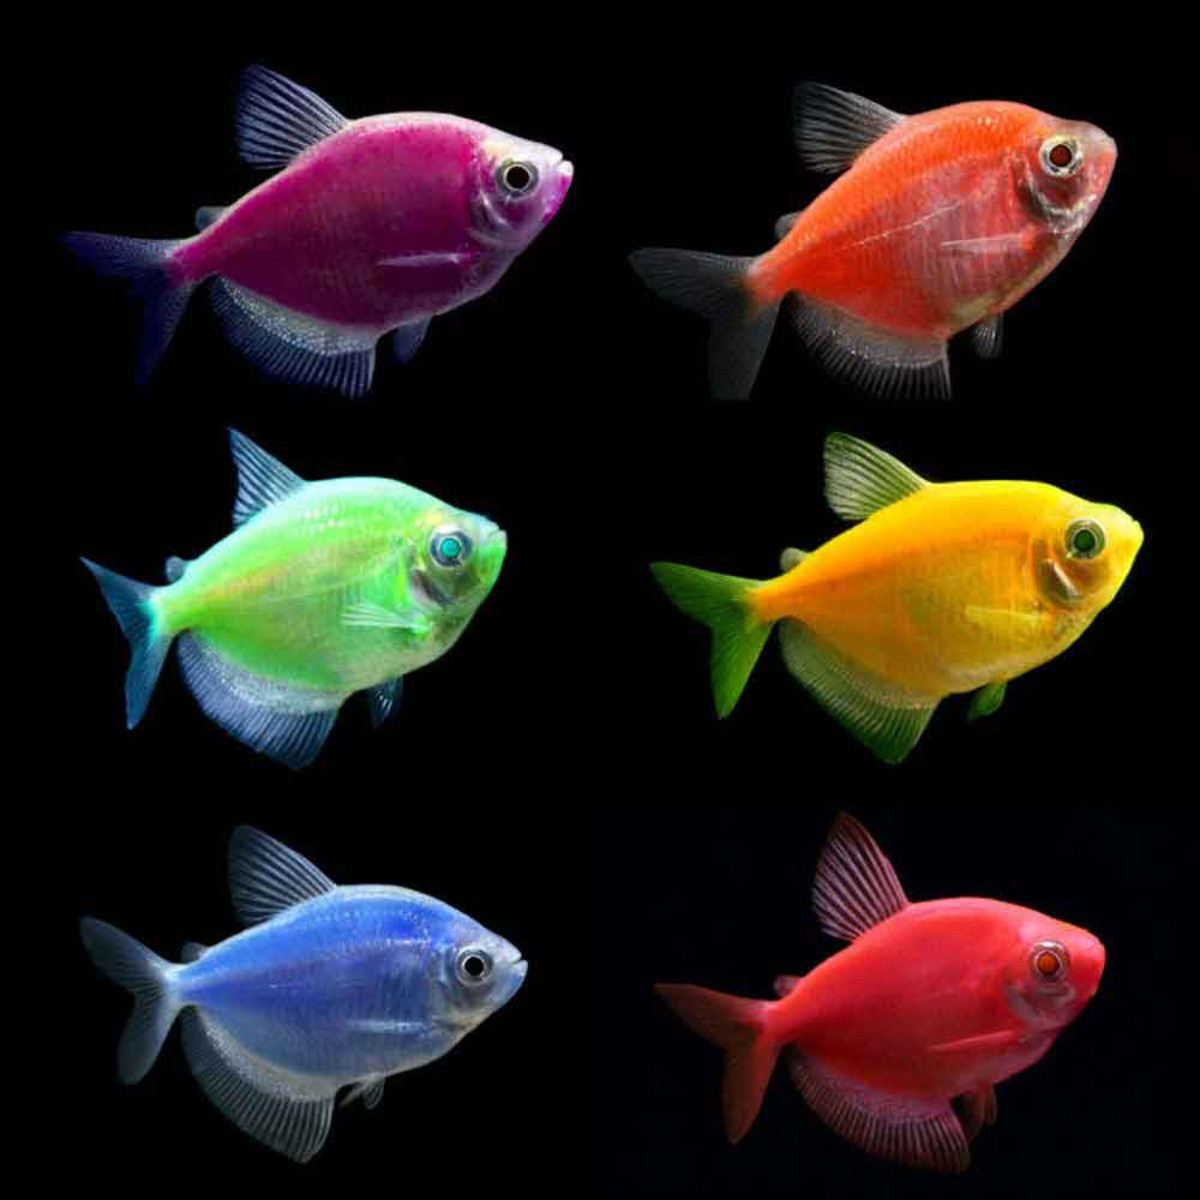 Glofish - photo#4